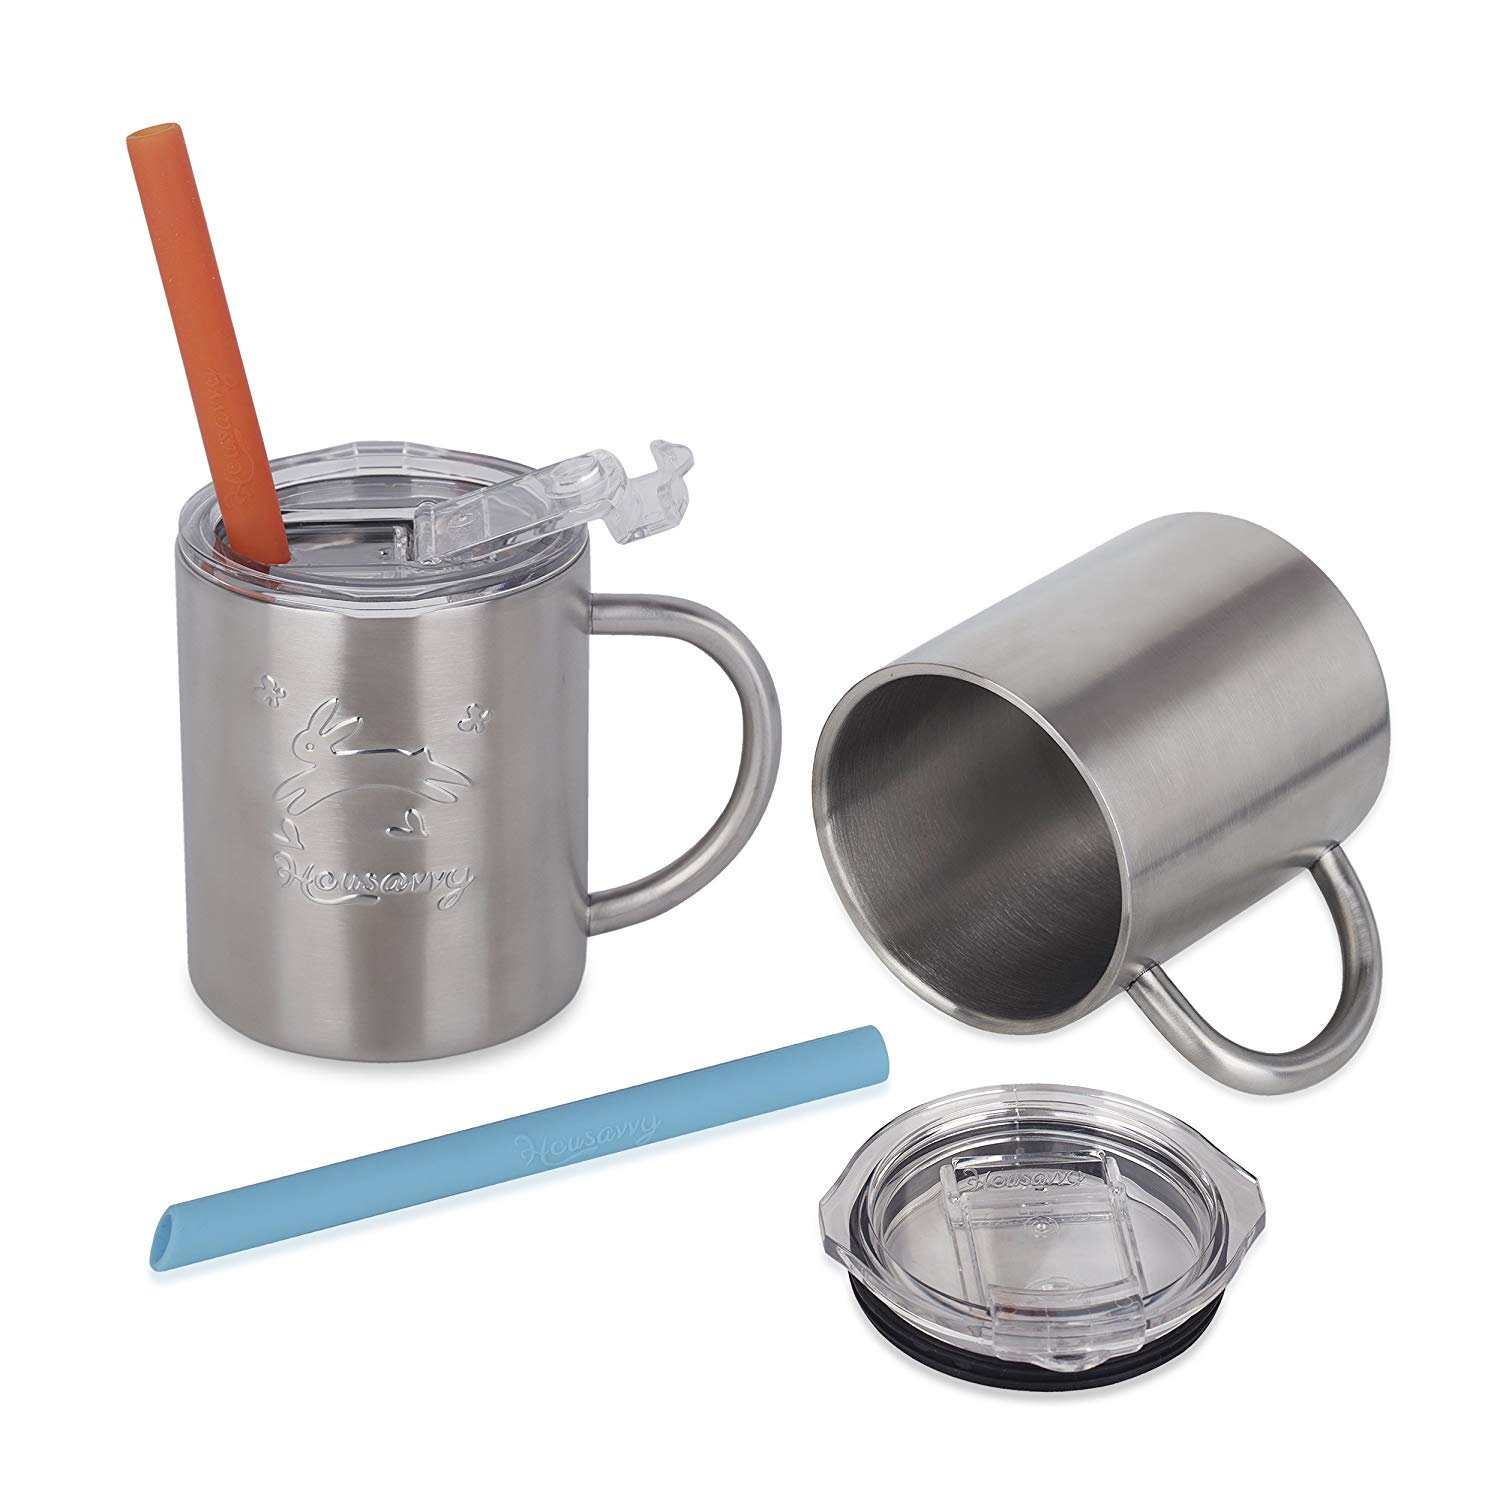 Housavvy 2 Pack of 10 Oz, Rabbit Stainless Steel Cup Set with Lids and Straws